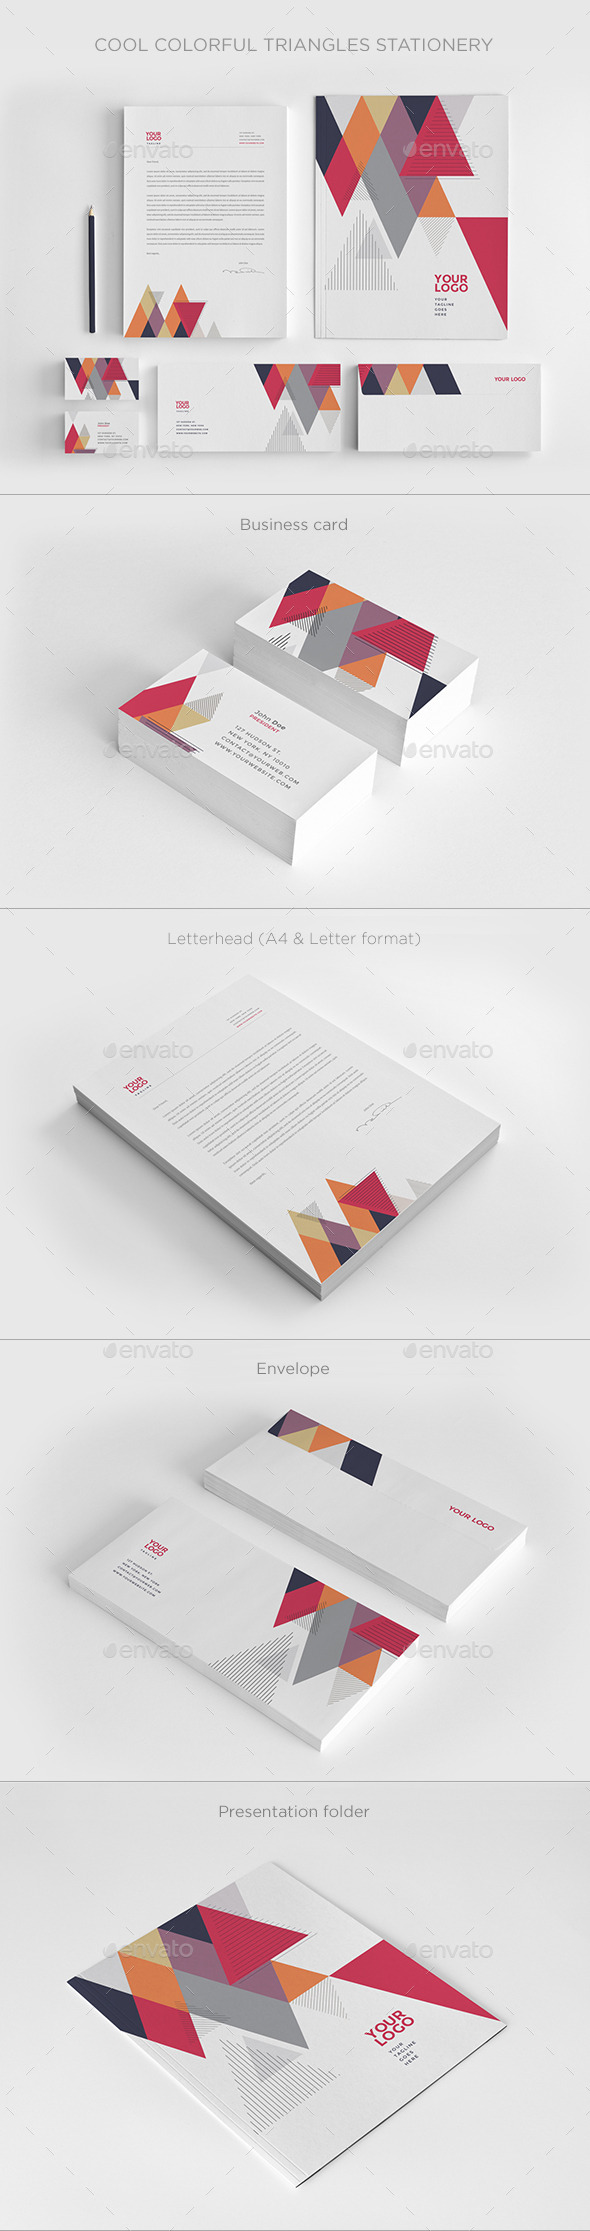 Cool Colorful Triangles Stationery - Stationery Print Templates